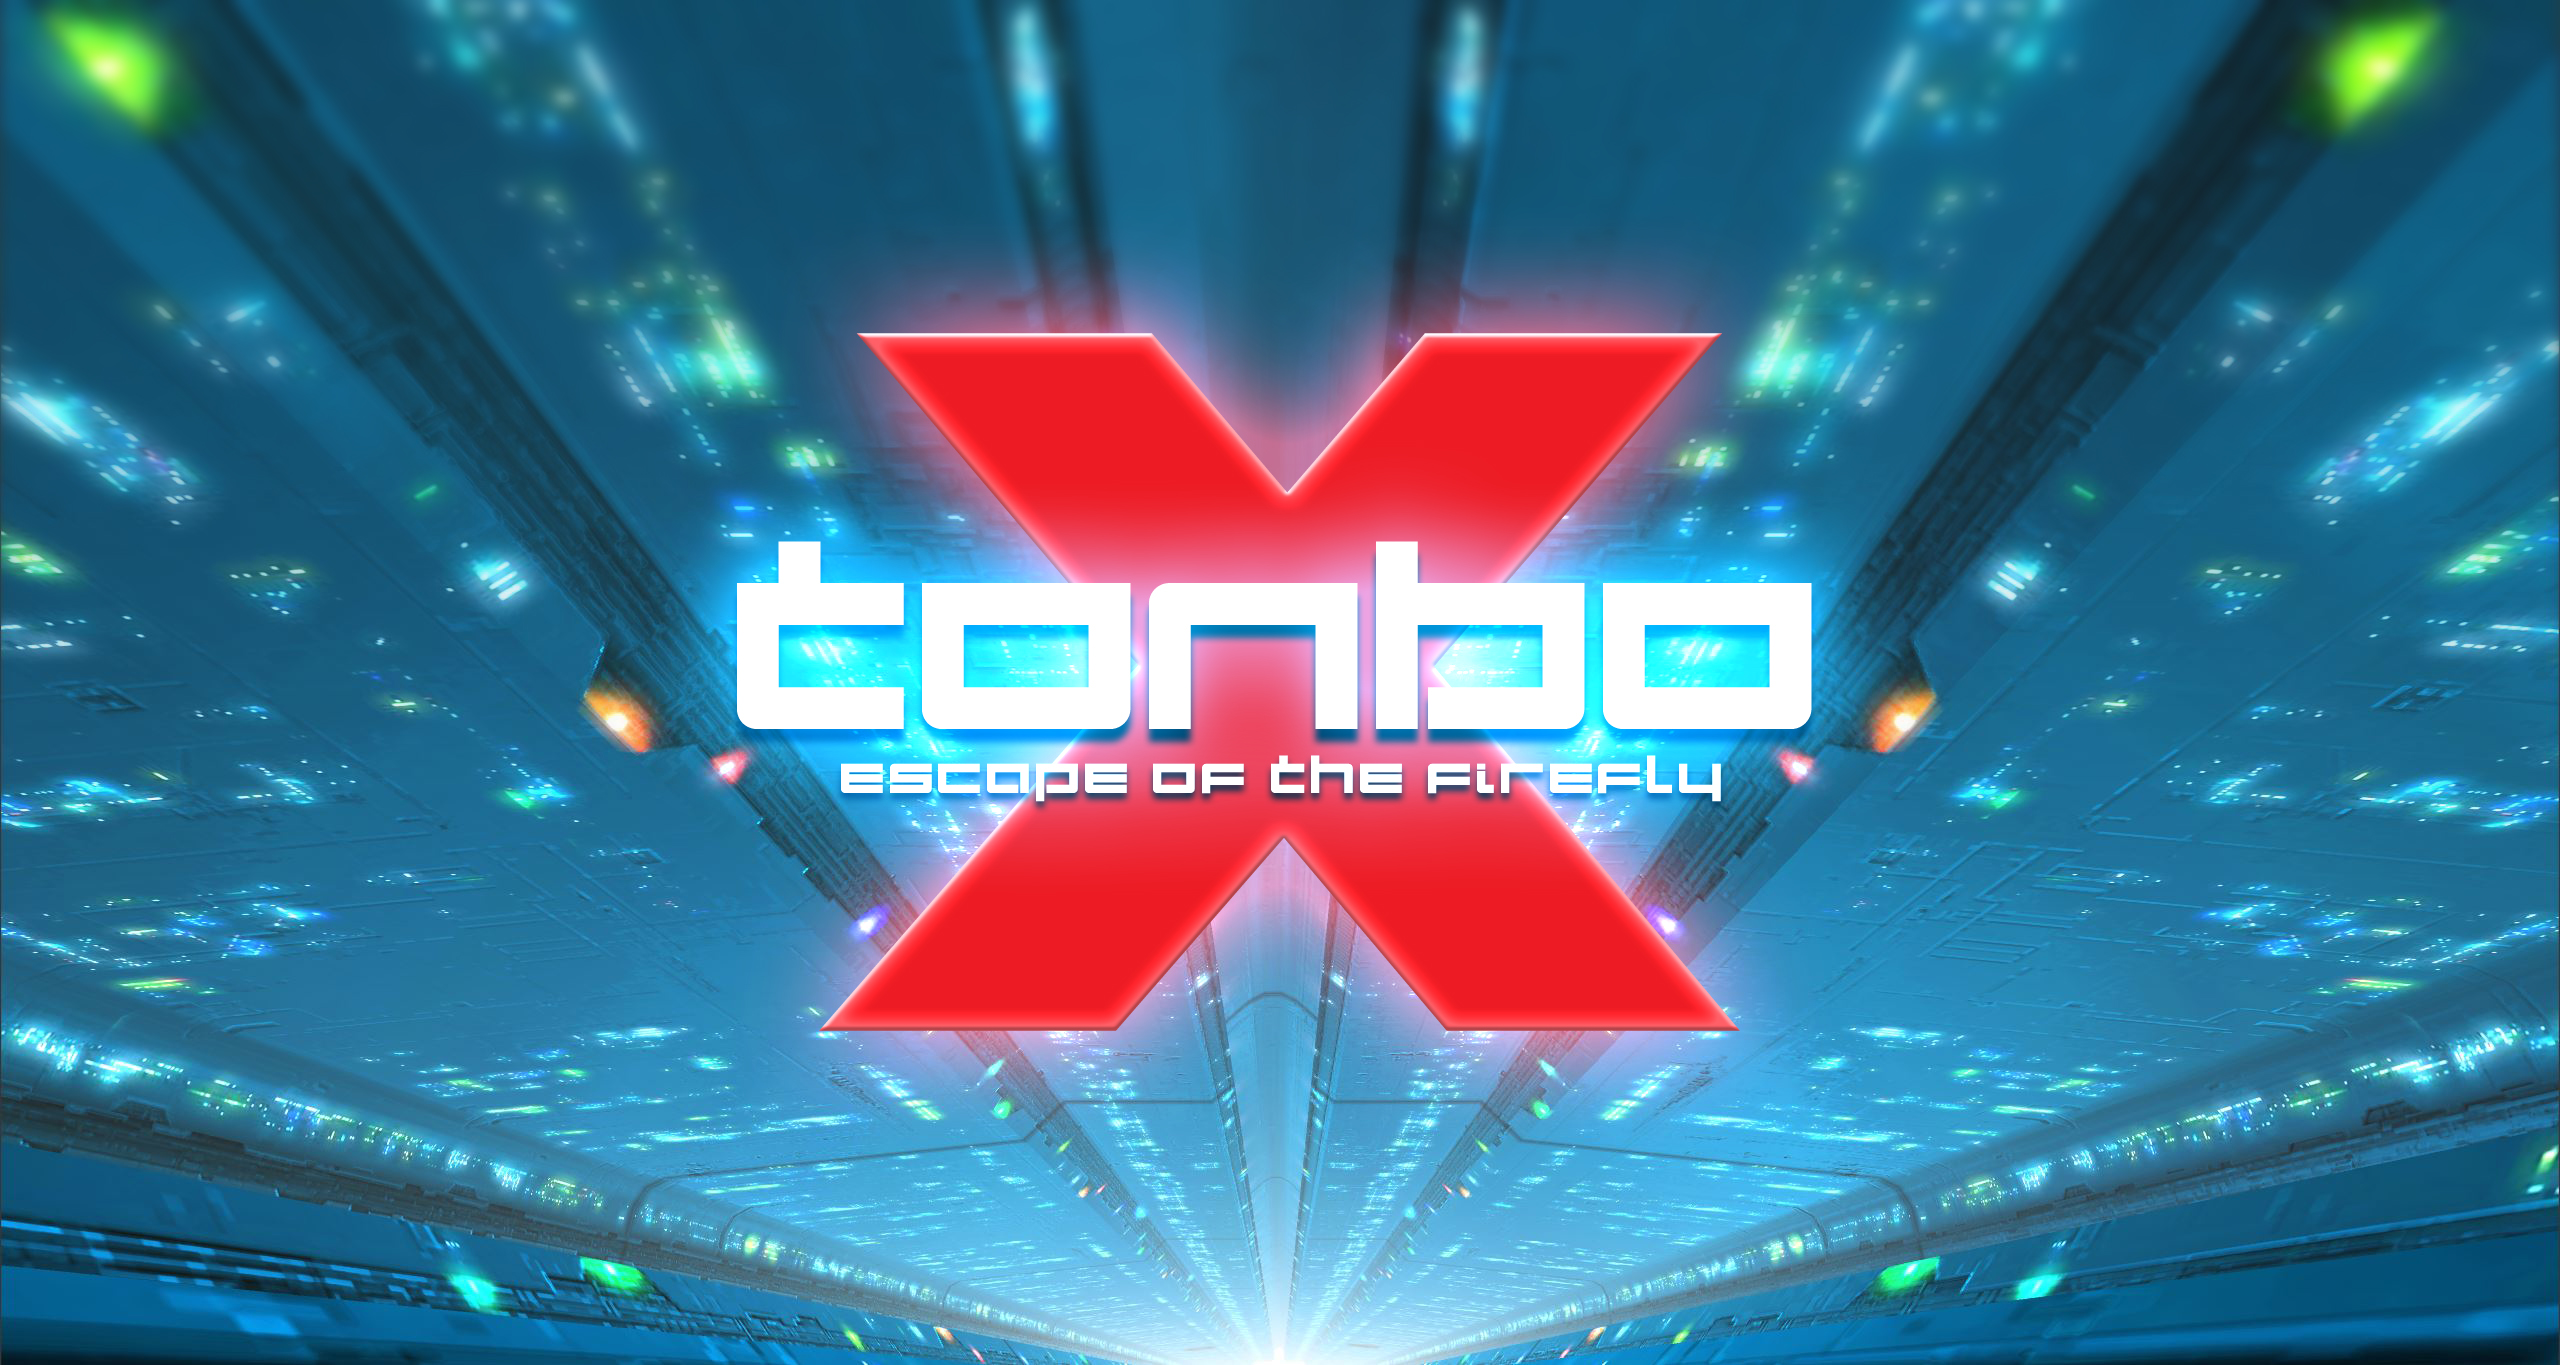 TONBO-X: The Escape of the Dragonfly